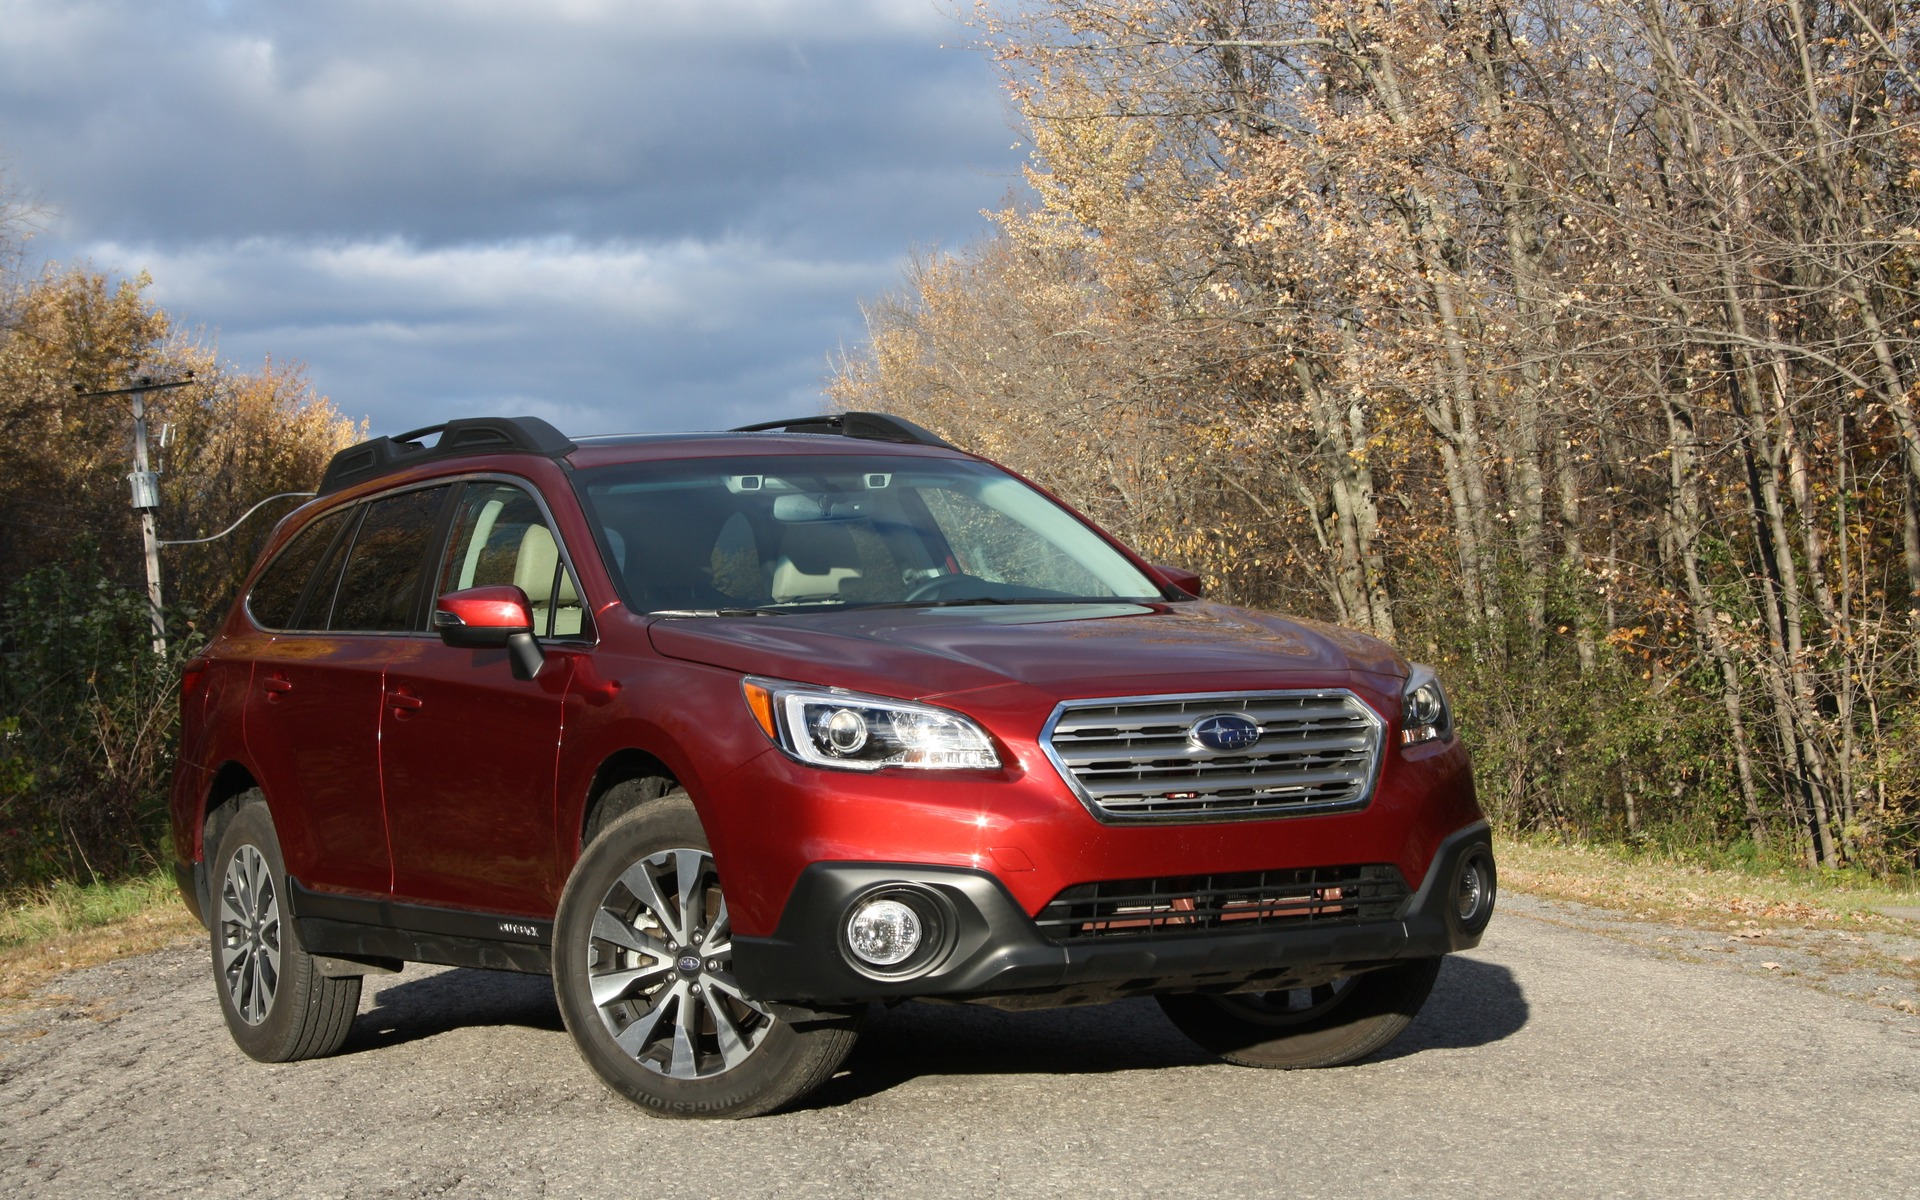 The 2016 Subaru Outback, a cross between an SUV and a station wagon.